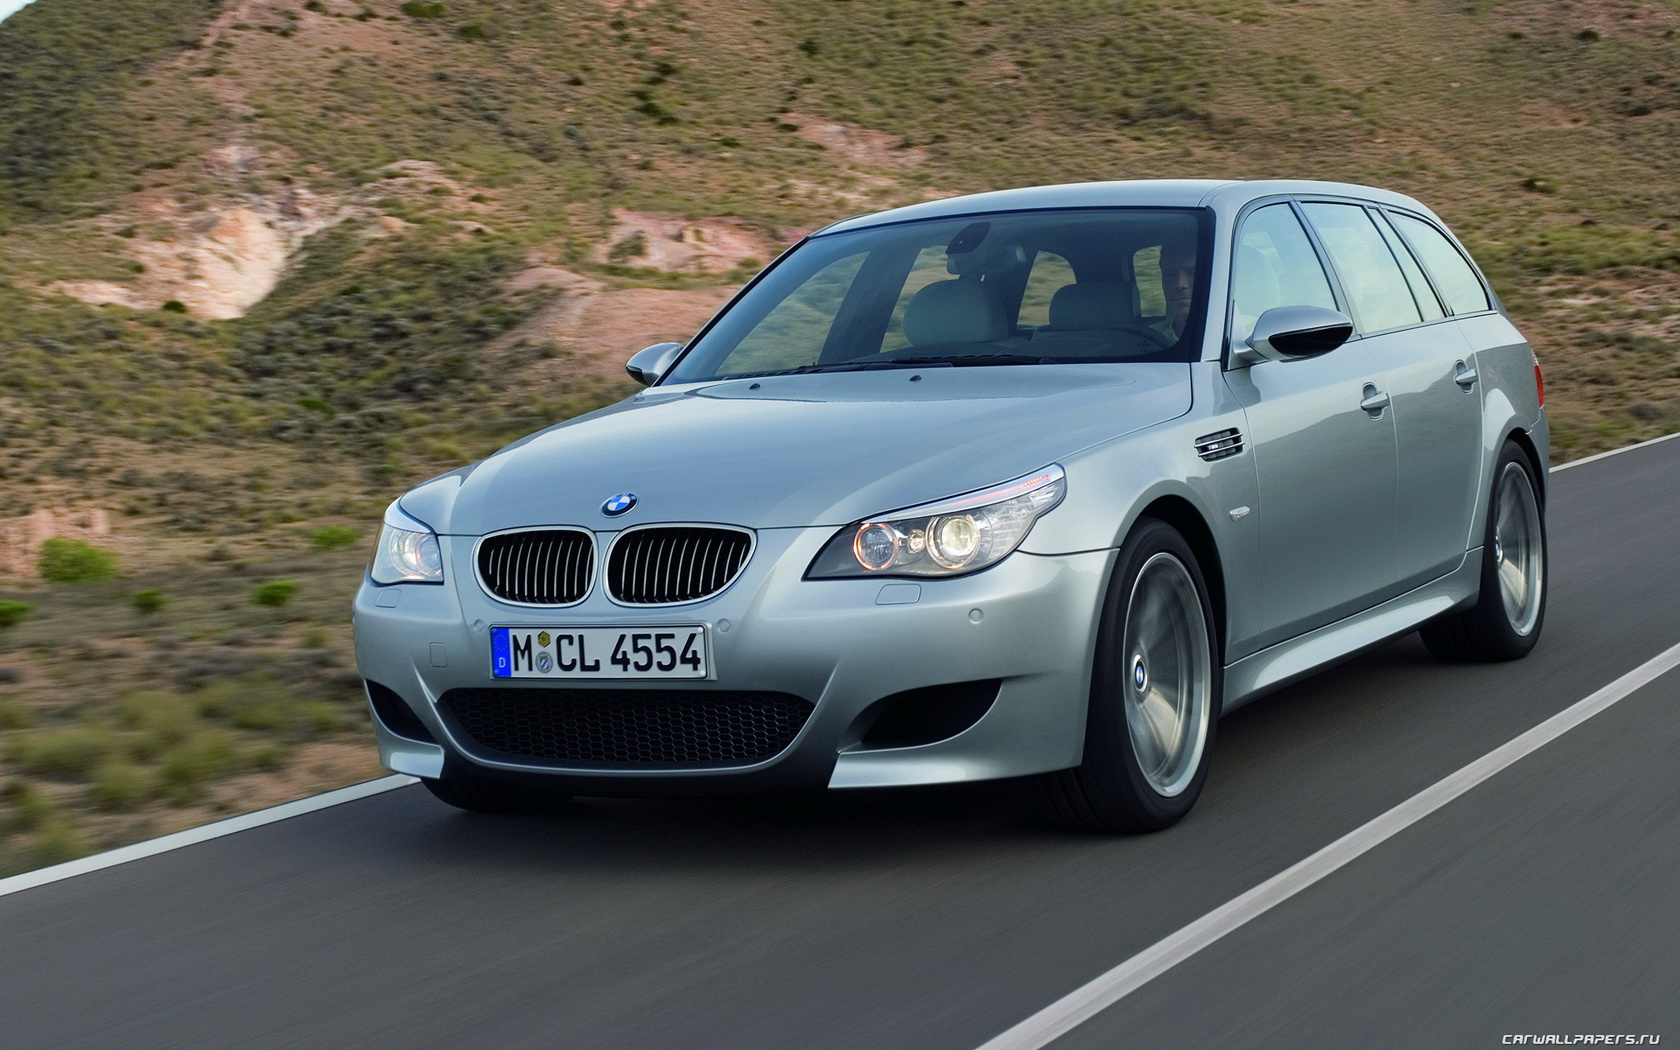 Car wallpapers   BMW M5 Touring   2006 1680x1050